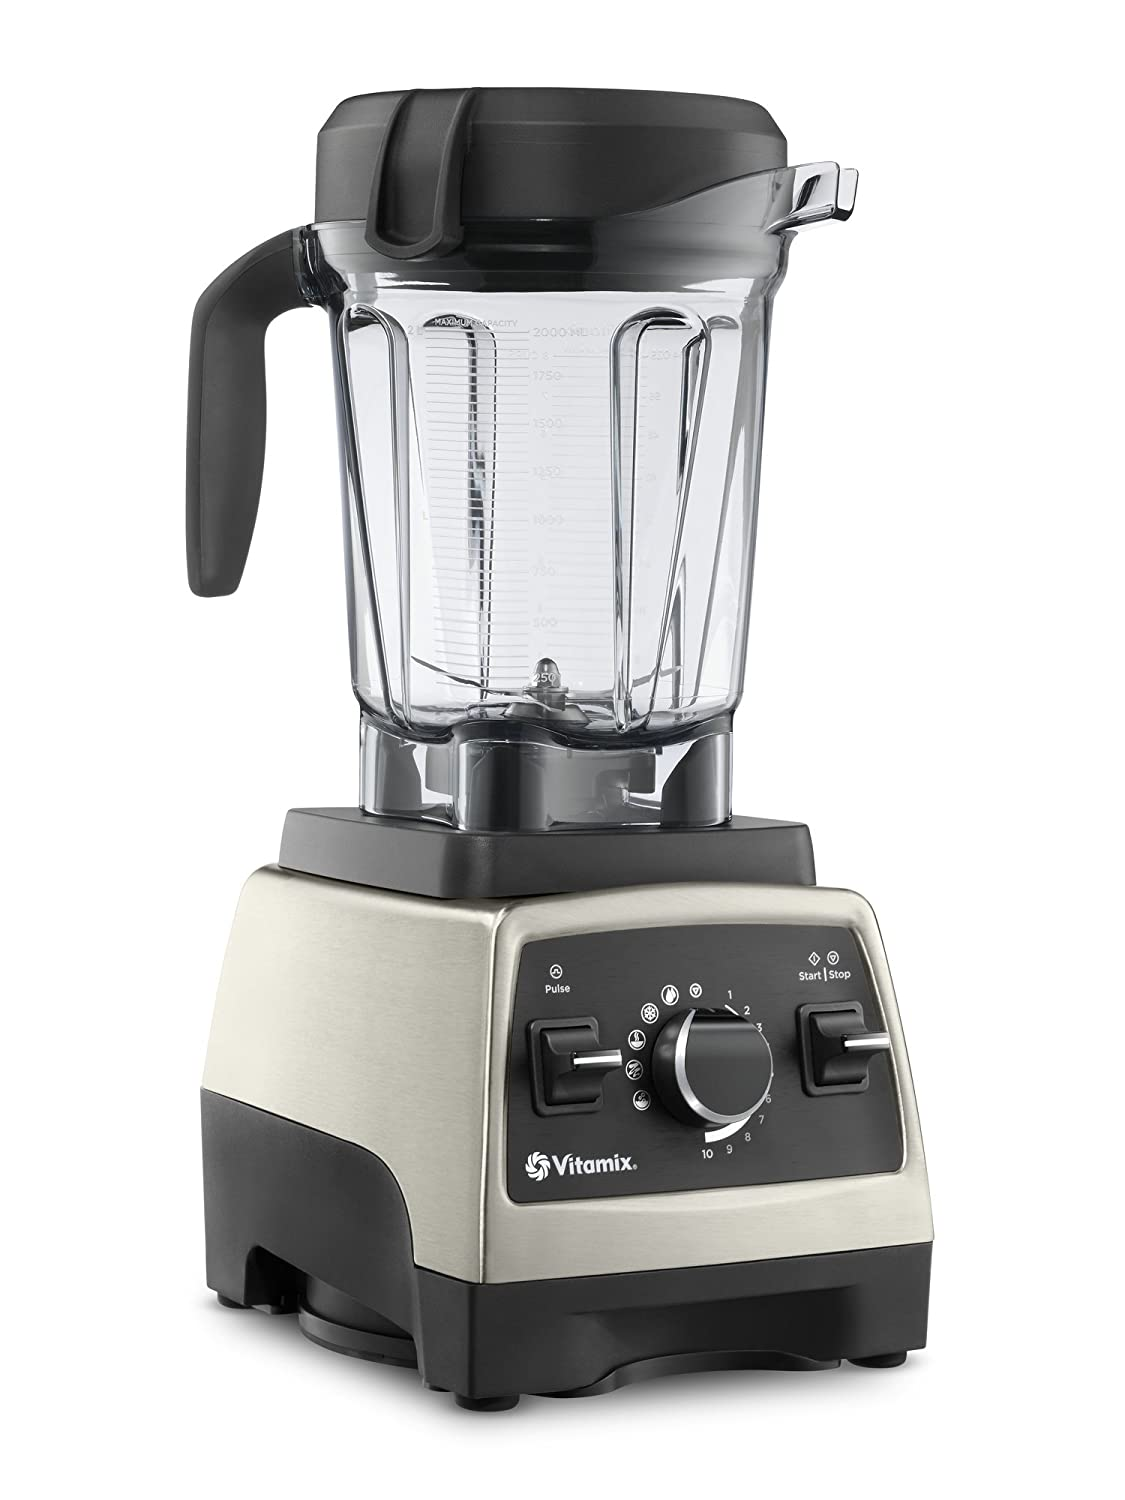 Vitamix Professional Series 750 Blender For Frozen Fruit